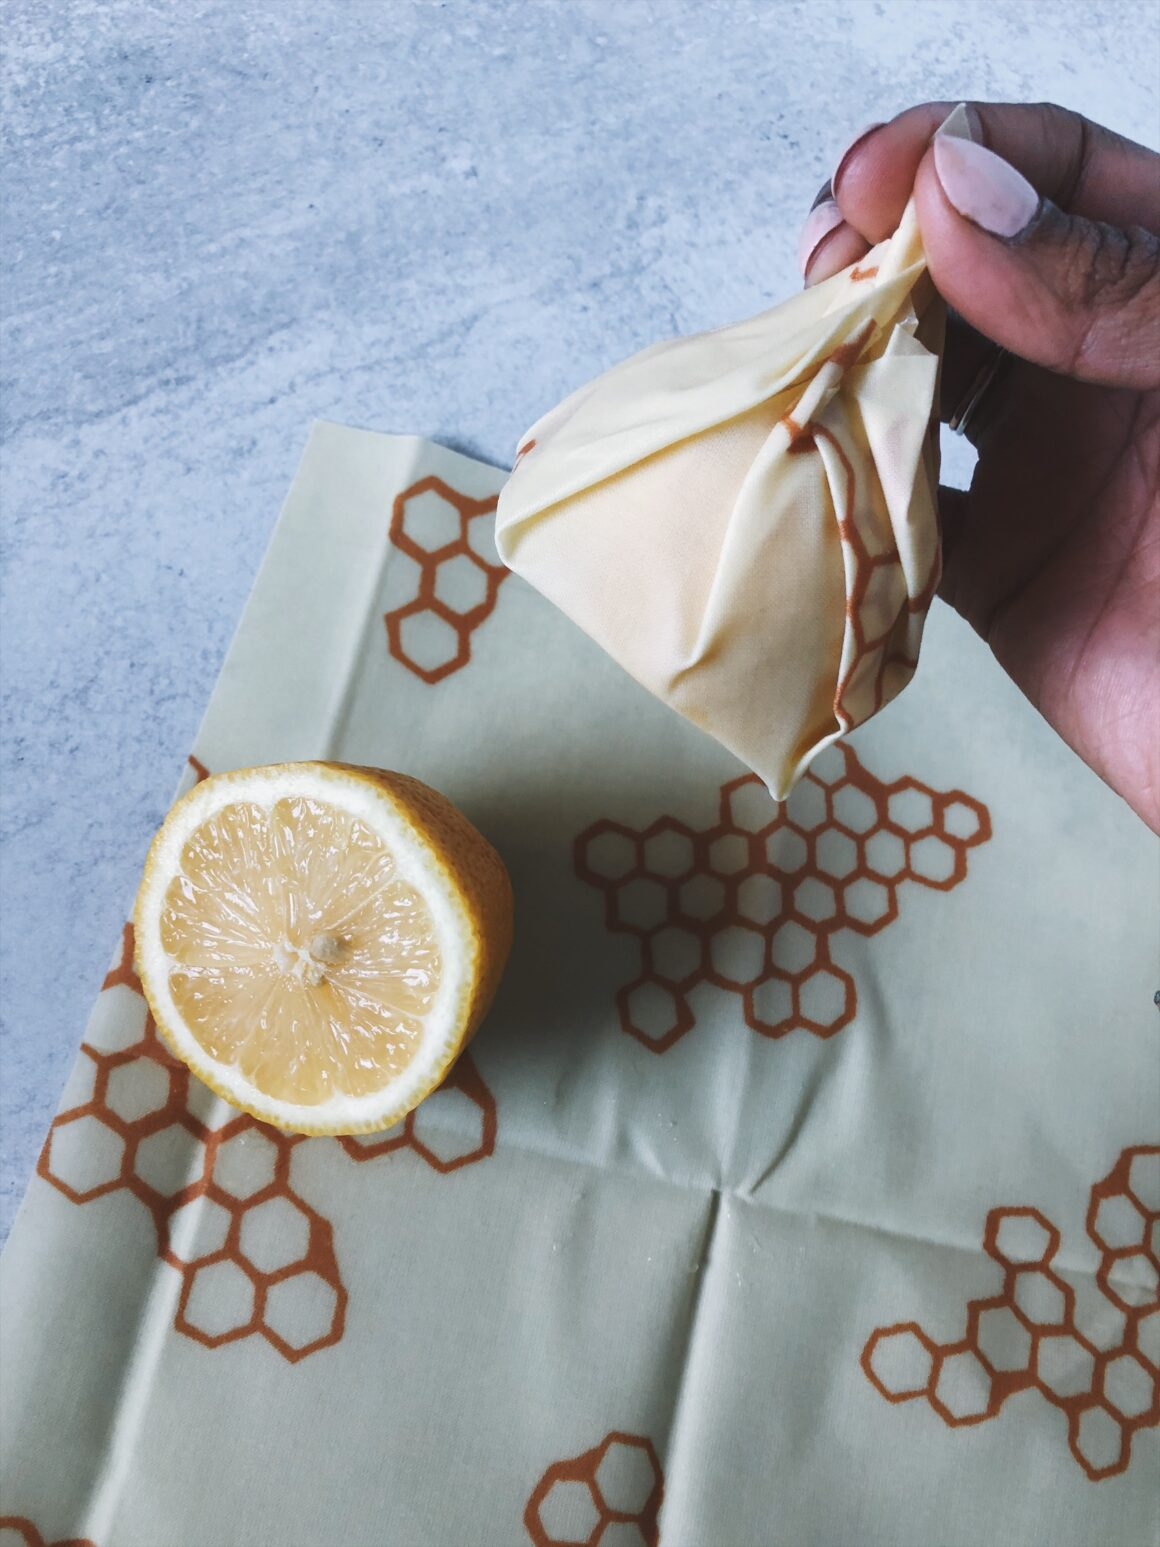 bees wax wrap sustainable alternatives to single use plastic